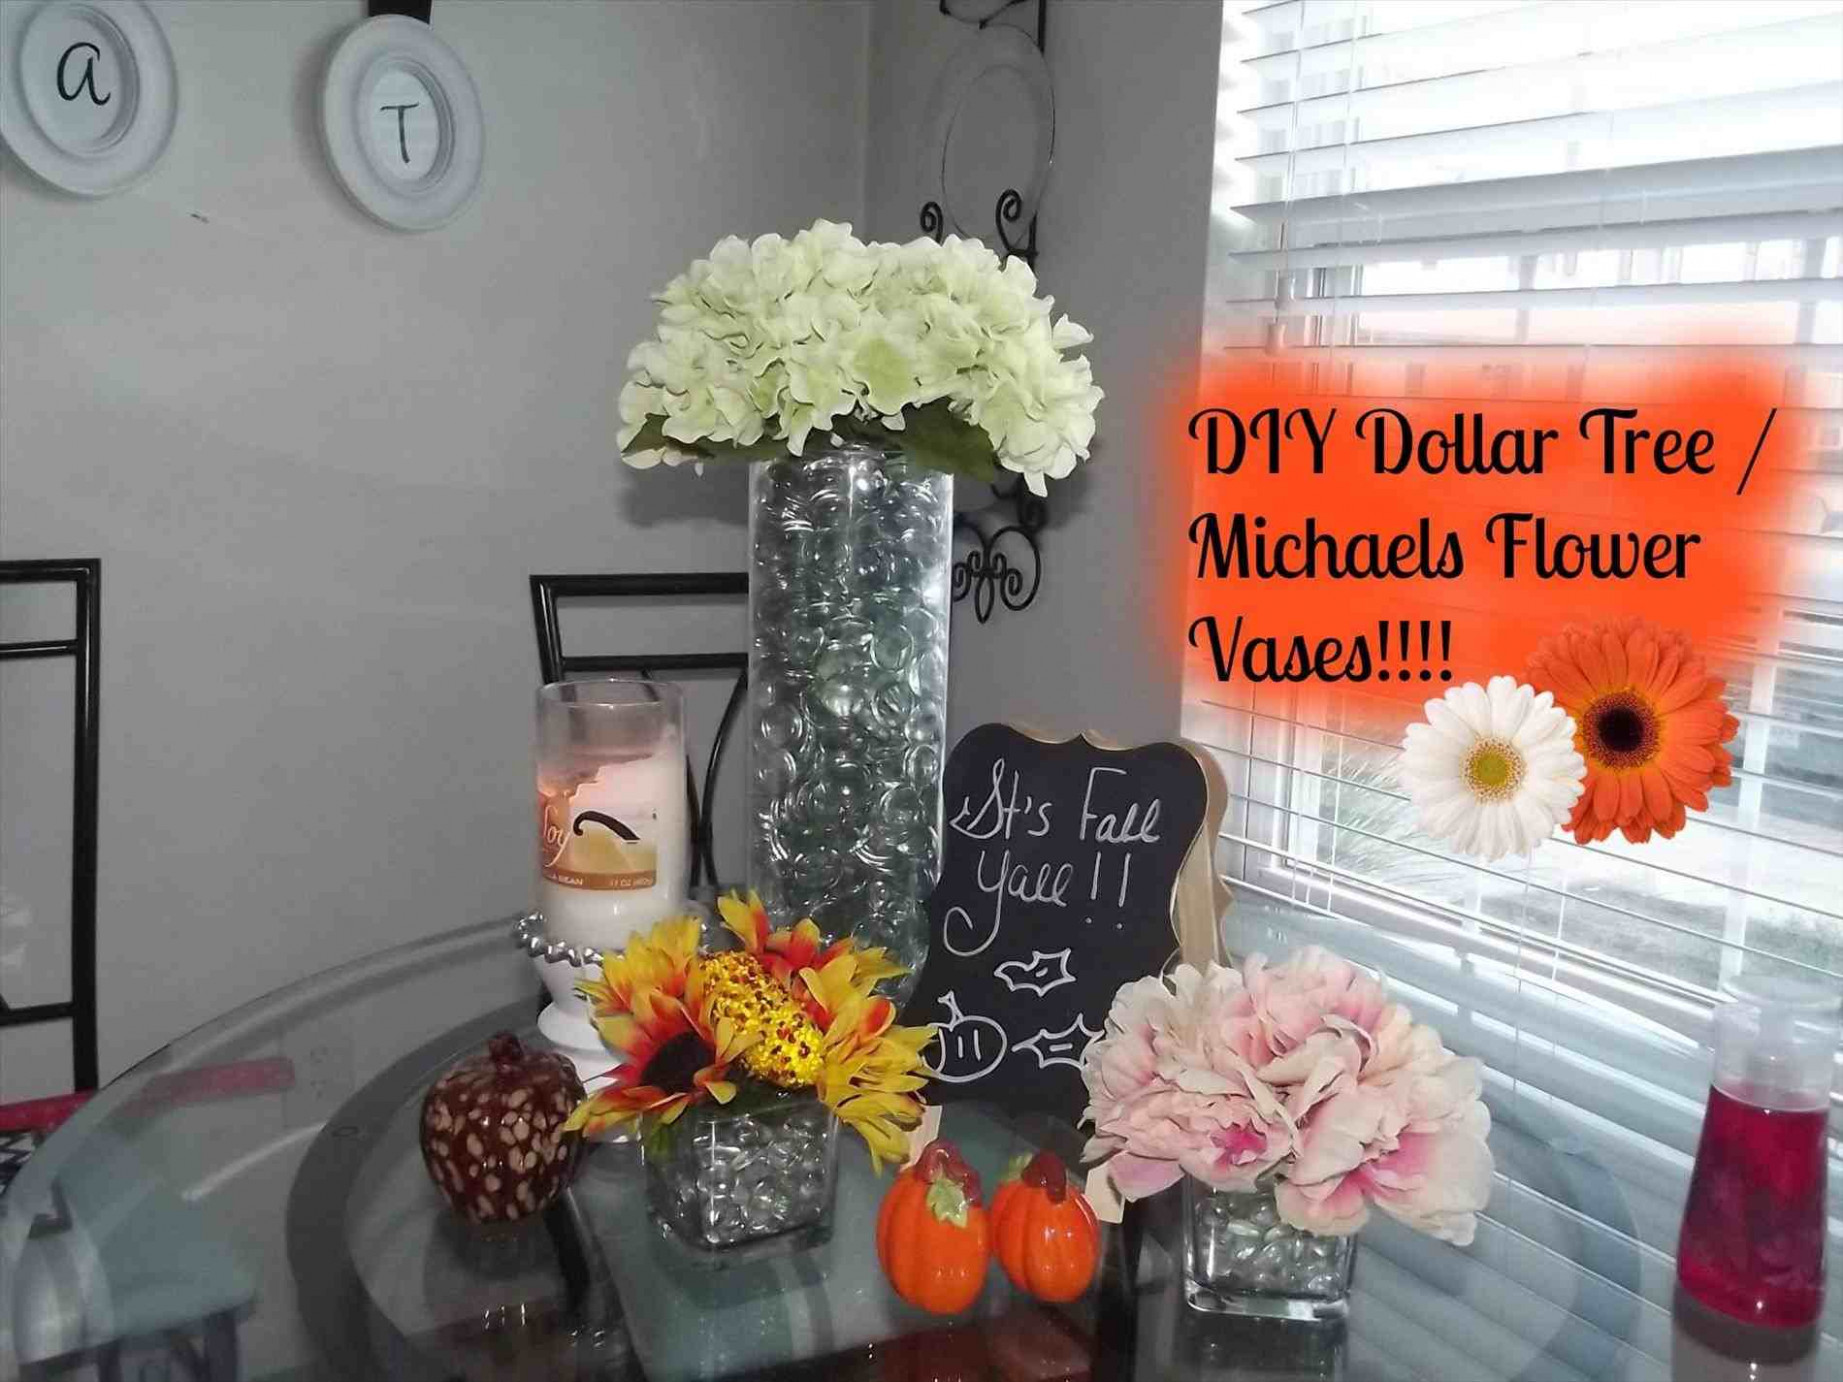 Hurricane Vases Michaels Of Dollar Tree Vases Centerpieces Www topsimages Com within Diy Wedding Centerpieces Dollar Tree Siudy Jpg 1843x1382 Dollar Tree Vases Centerpieces